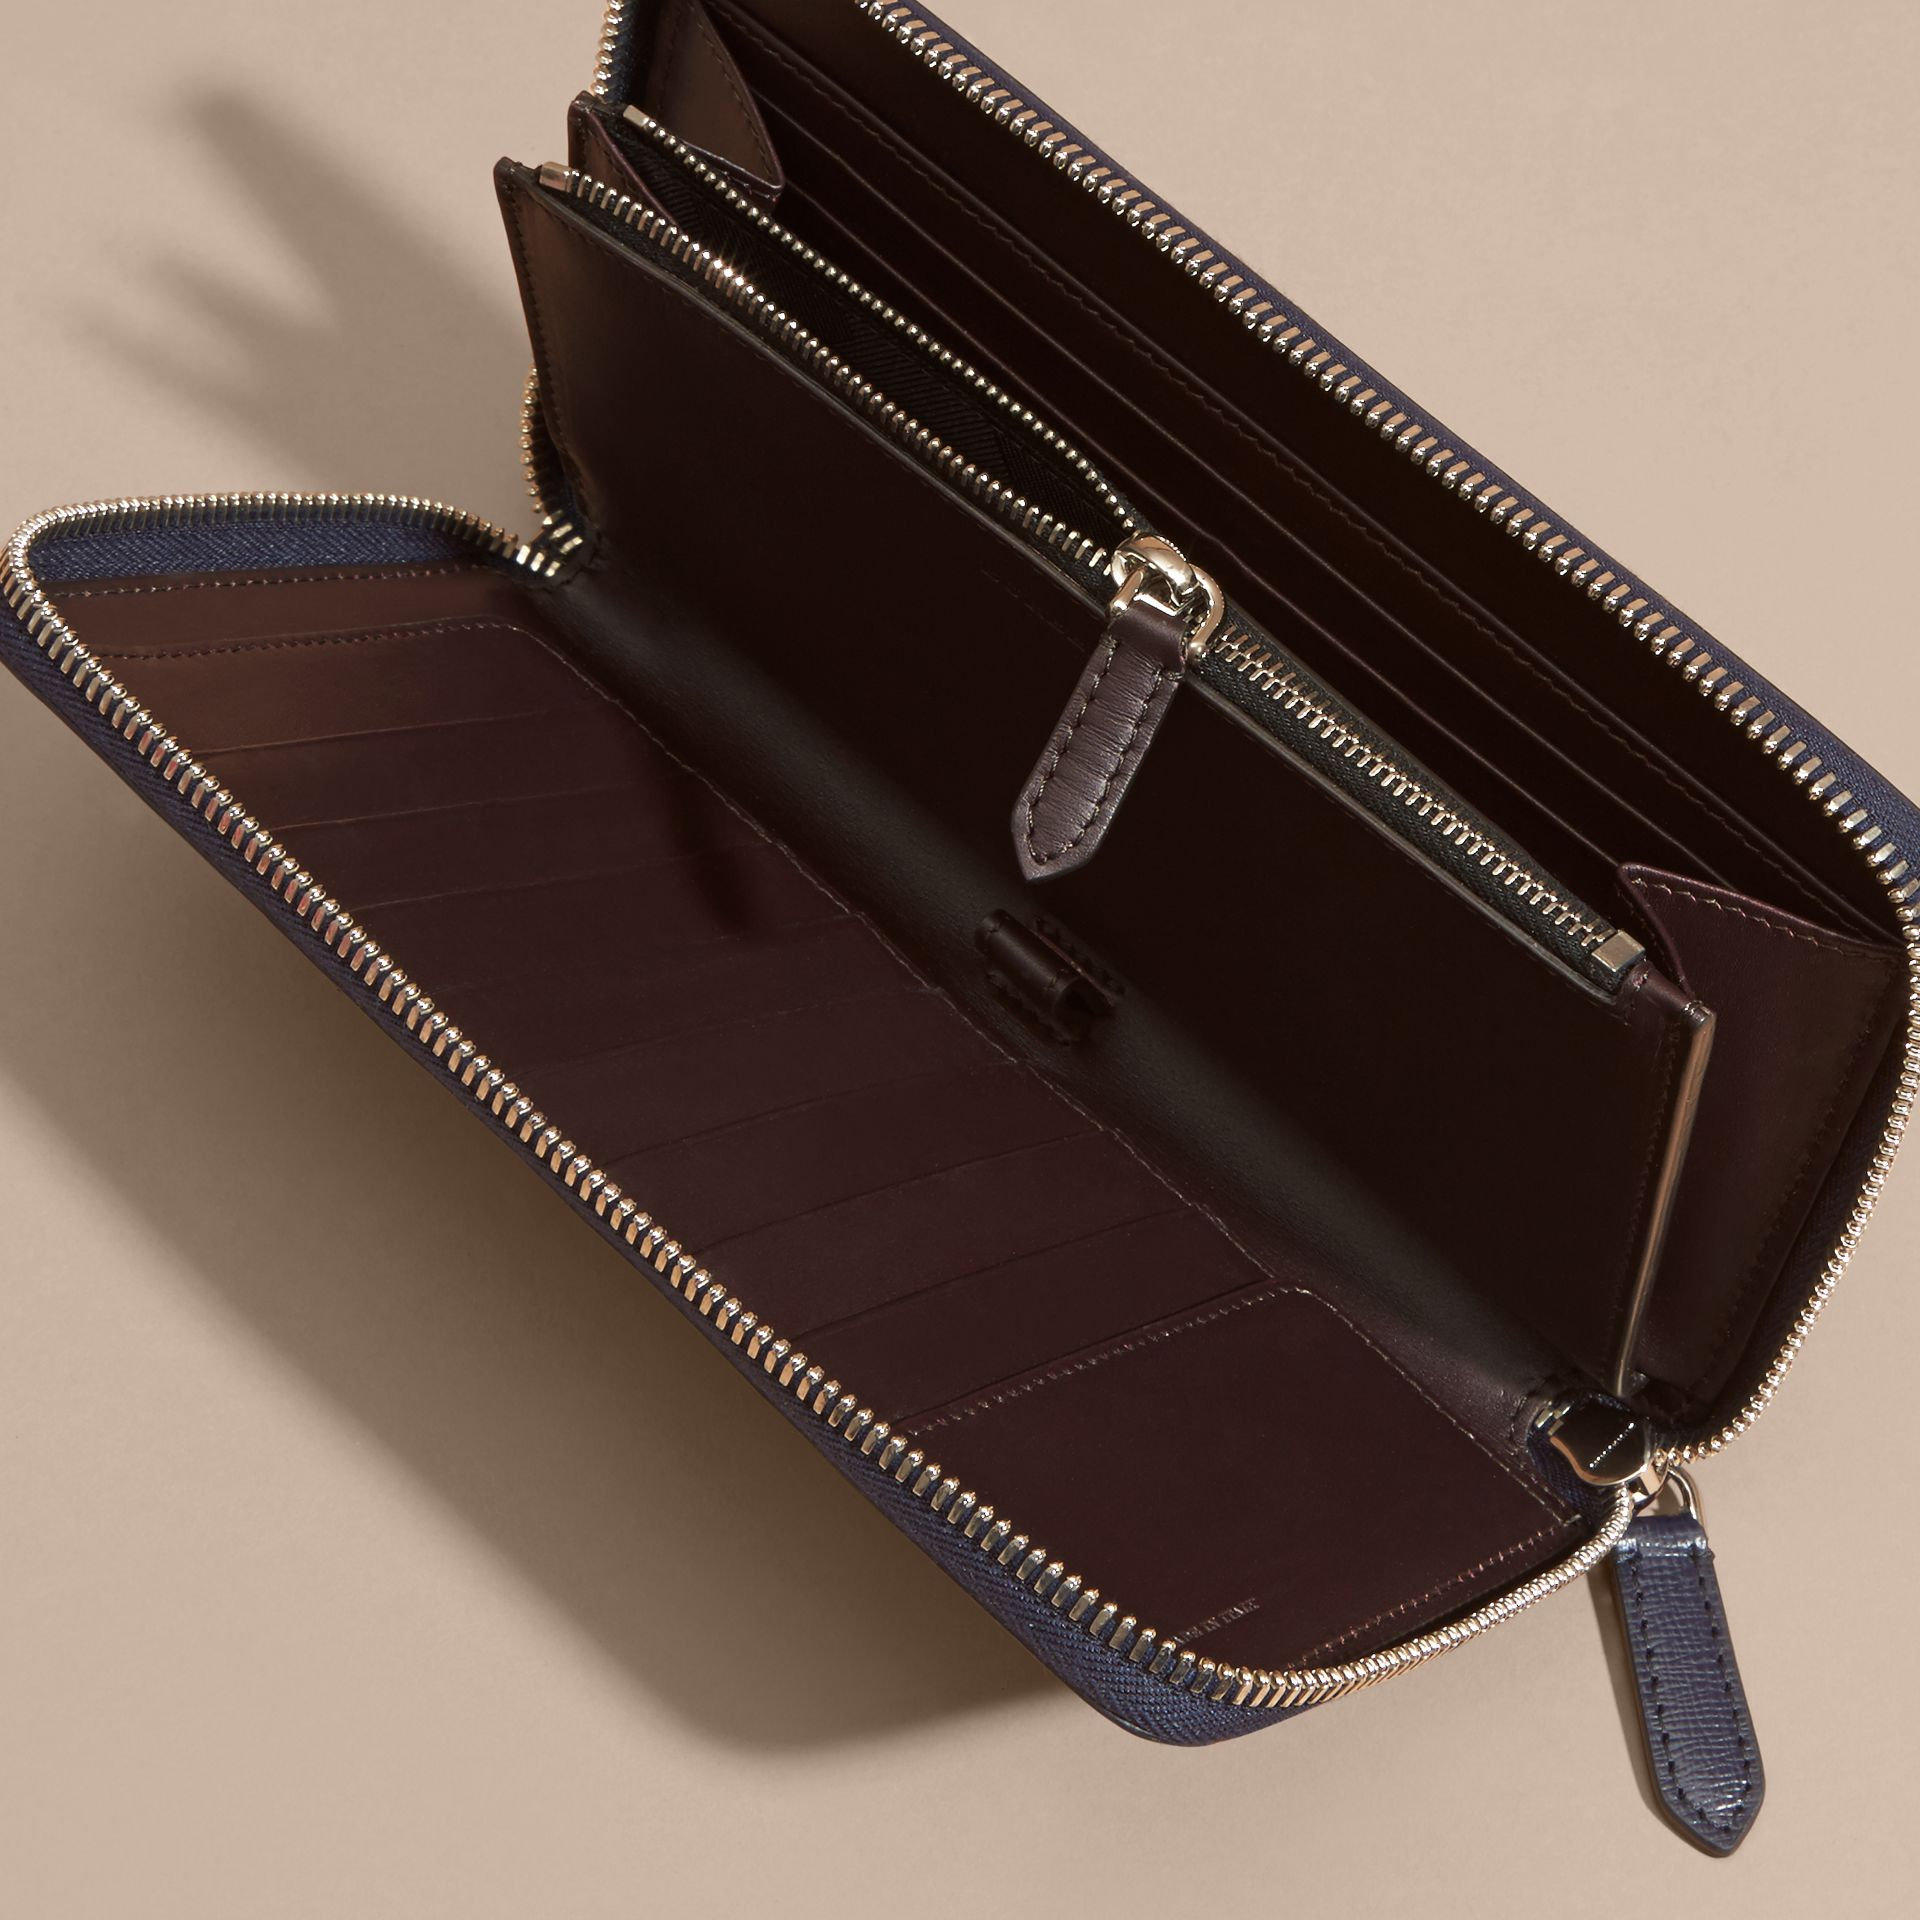 Border Detail London Leather Ziparound Wallet Dark Navy - gallery image 5